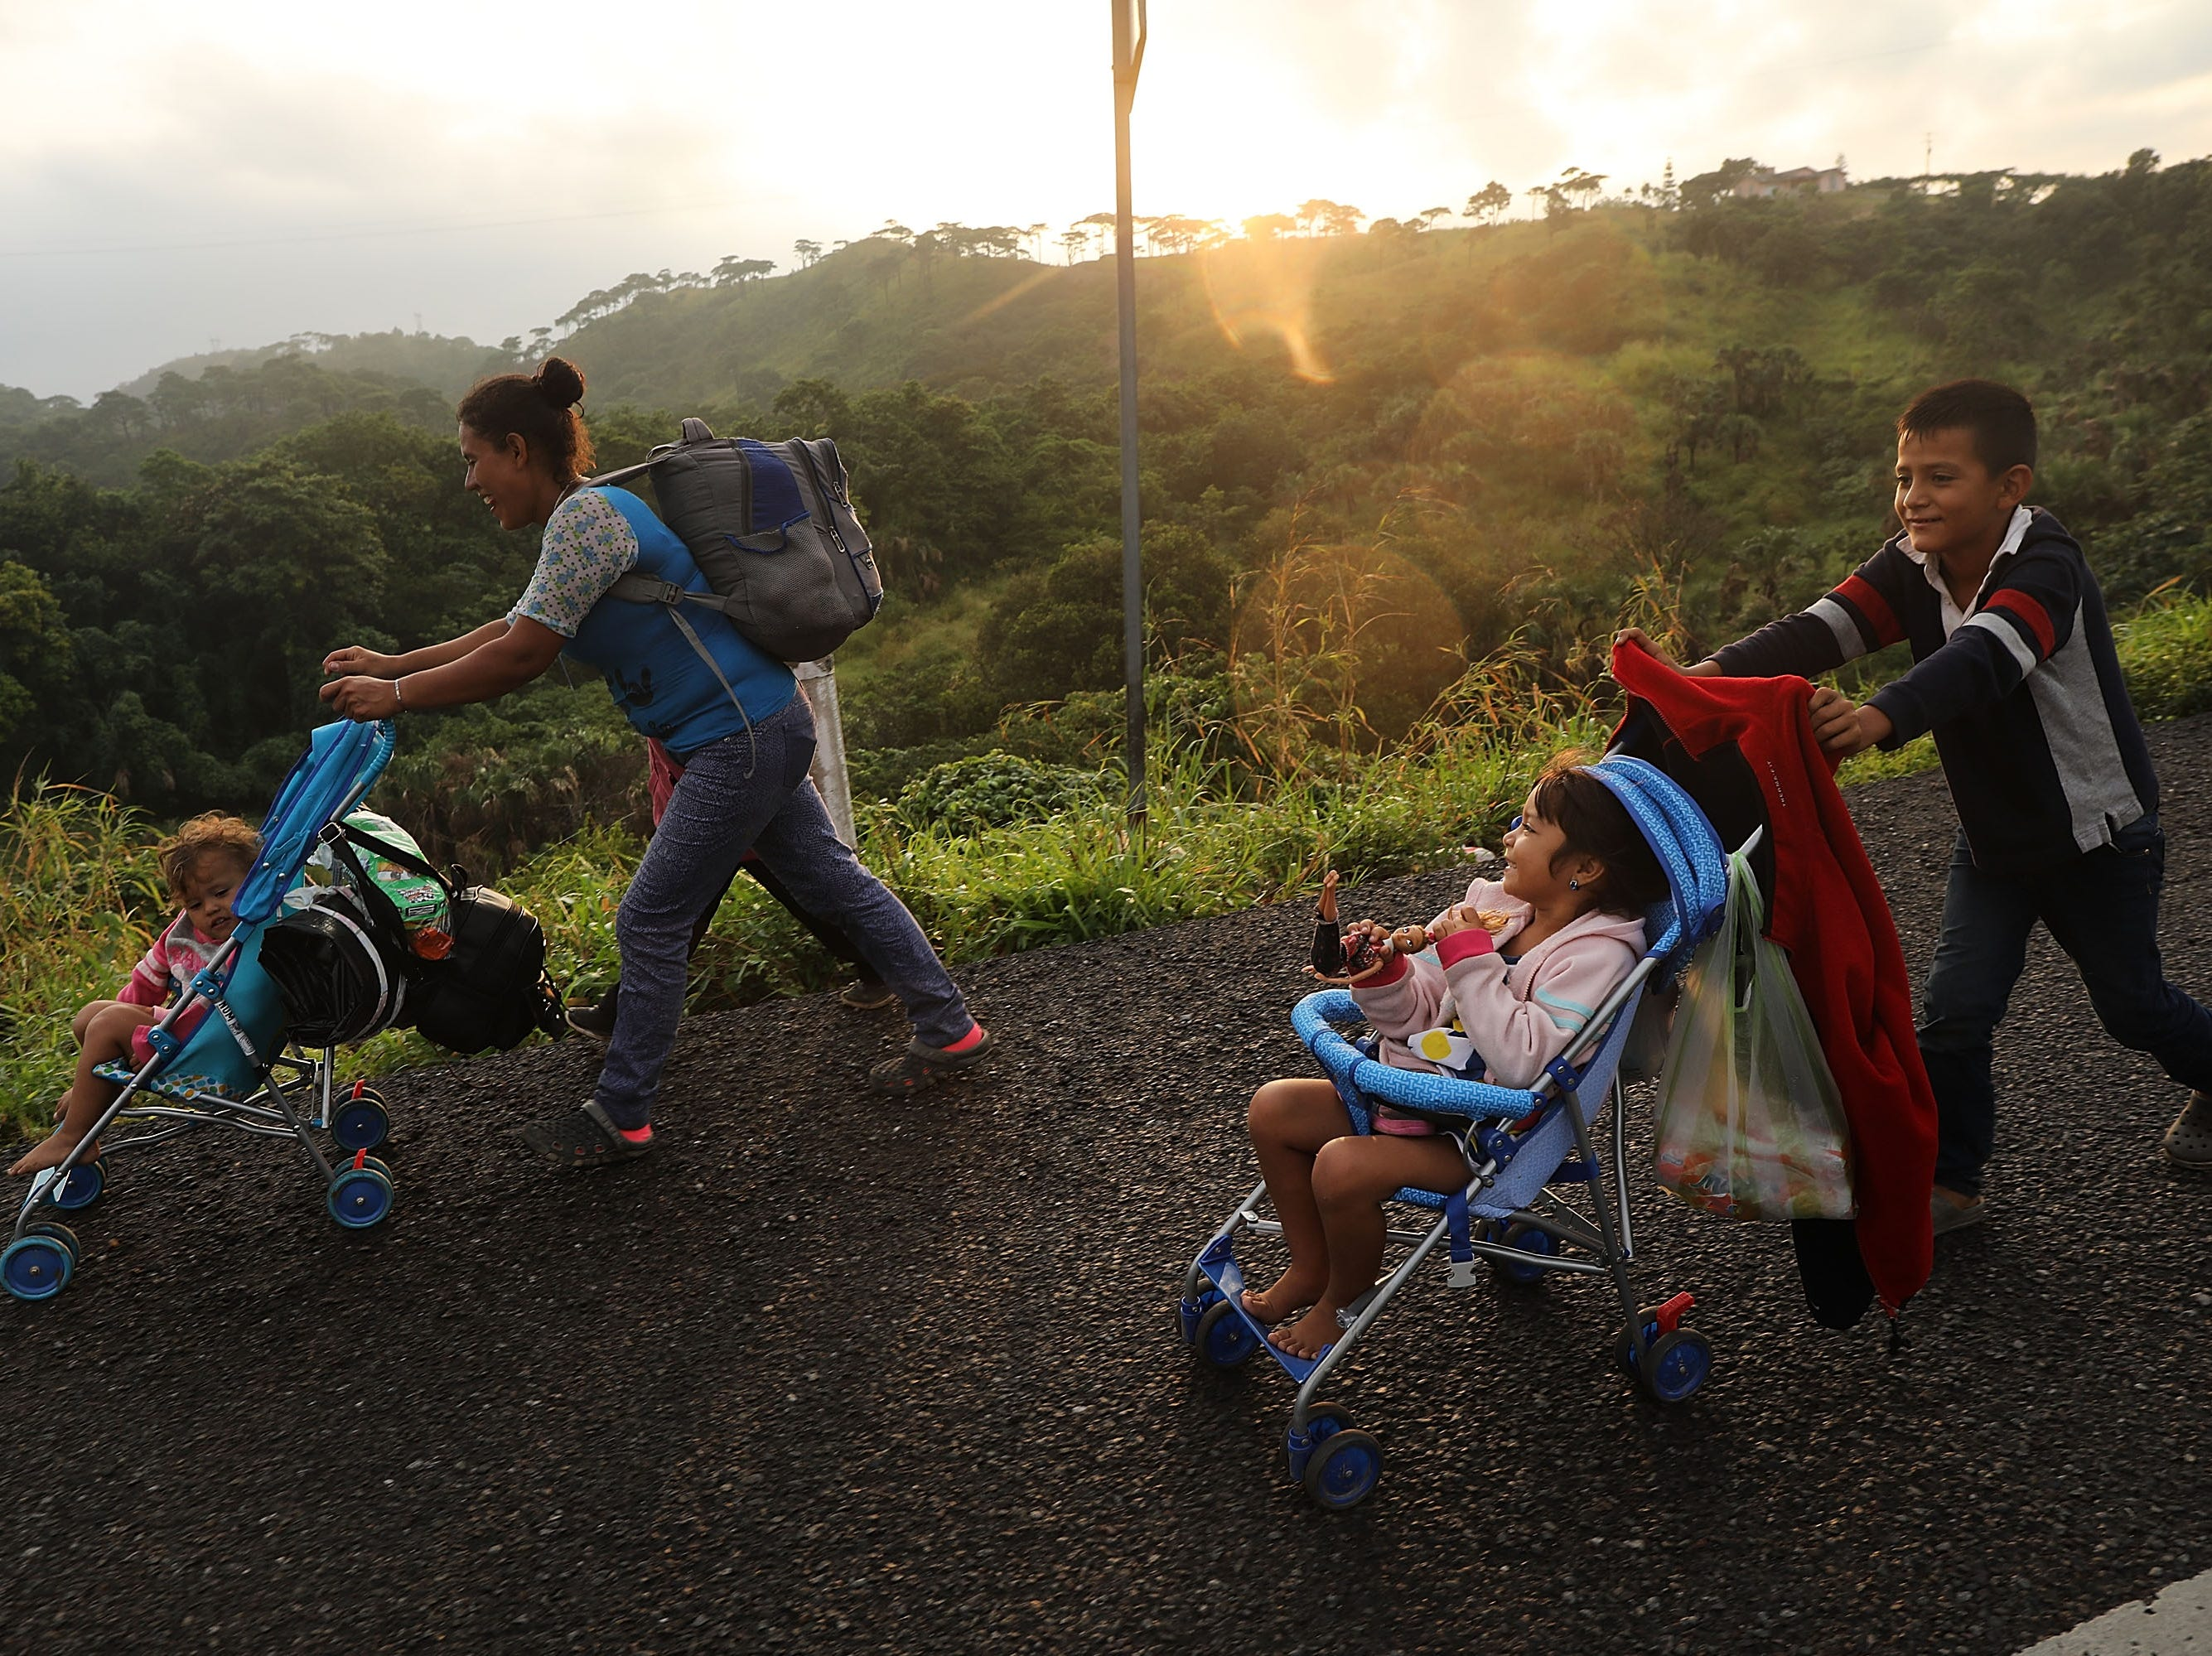 Members of the Central American migrant caravan move to the next town at dawn on Nov. 02, 2018 in Matias Romero, Mexico. The group of migrants, many of them fleeing violence in their home countries, last took a rest day on Wednesday and has resumed their journey towards the United States border. As fatigue from the heat, distance and poor sanitary conditions has set in, the numbers of people participating in the trek has slowly dwindled but a significant group are still determined to get to the United States. President Donald Trump said Wednesday as many as 15,000 active-duty troops may be deployed to the U.S.-Mexico border in an effort to prevent members of the migrant caravan from illegally entering the country.